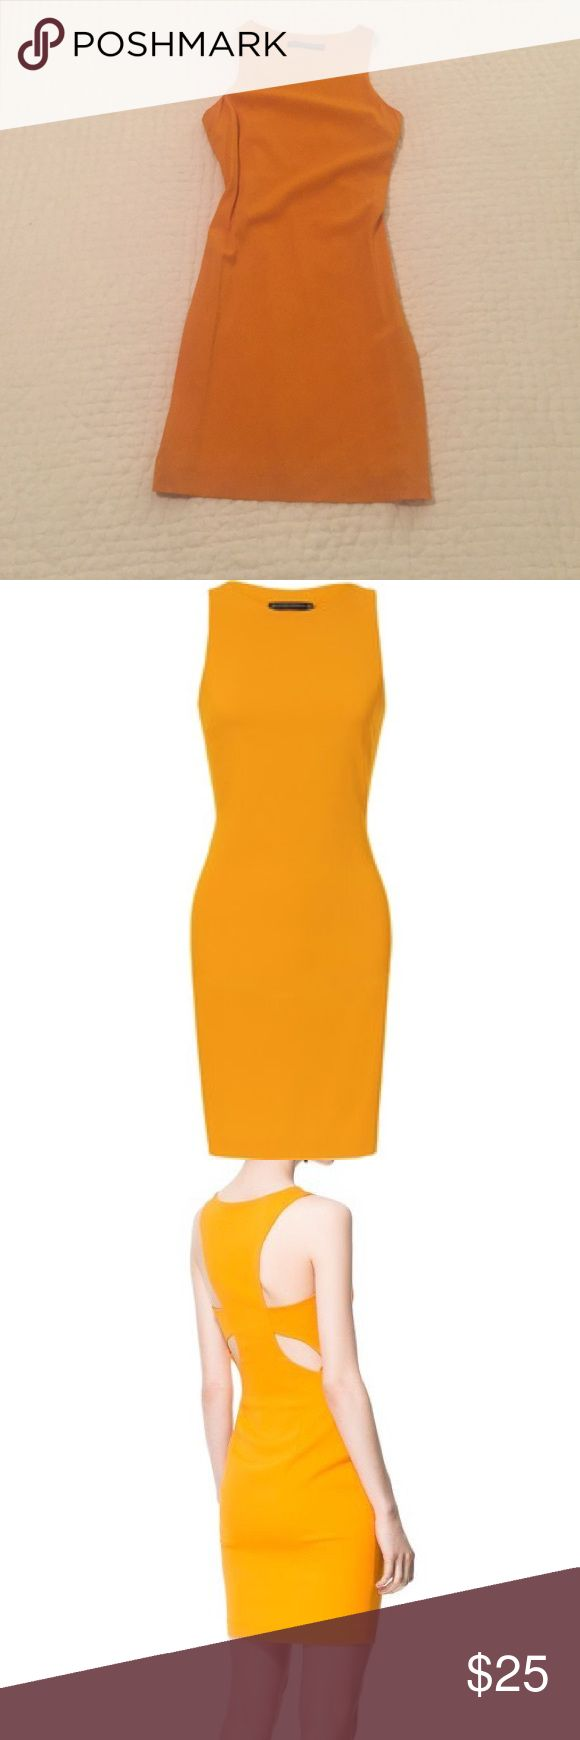 Zara back cut out dress Mango color back cut out dress, fits like a glove! Perfect for spring weddings or events. Zara Dresses Mini